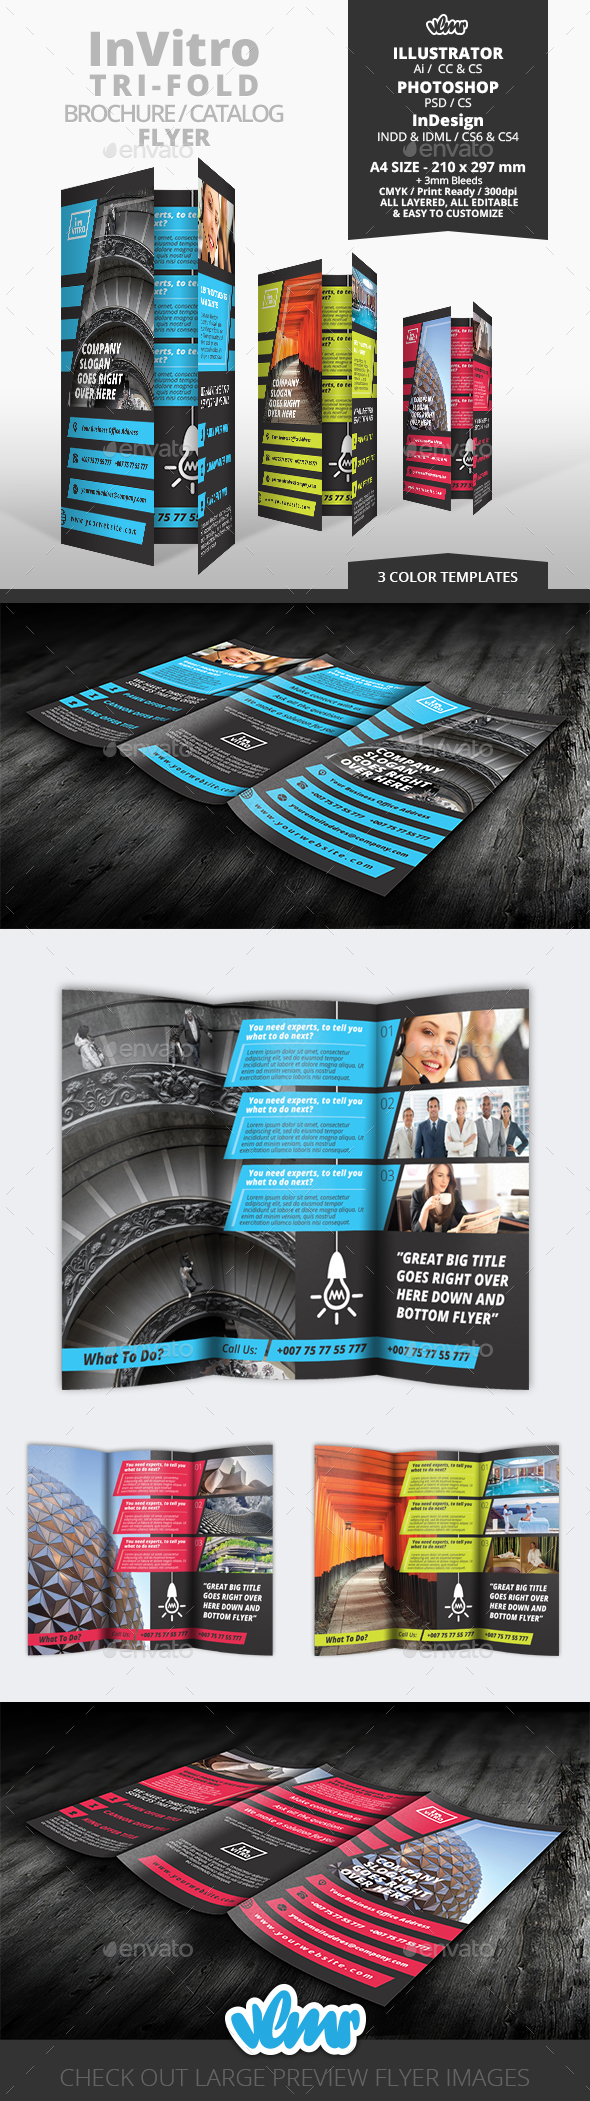 InVitro Tri Fold Flyer Template - Corporate Flyers